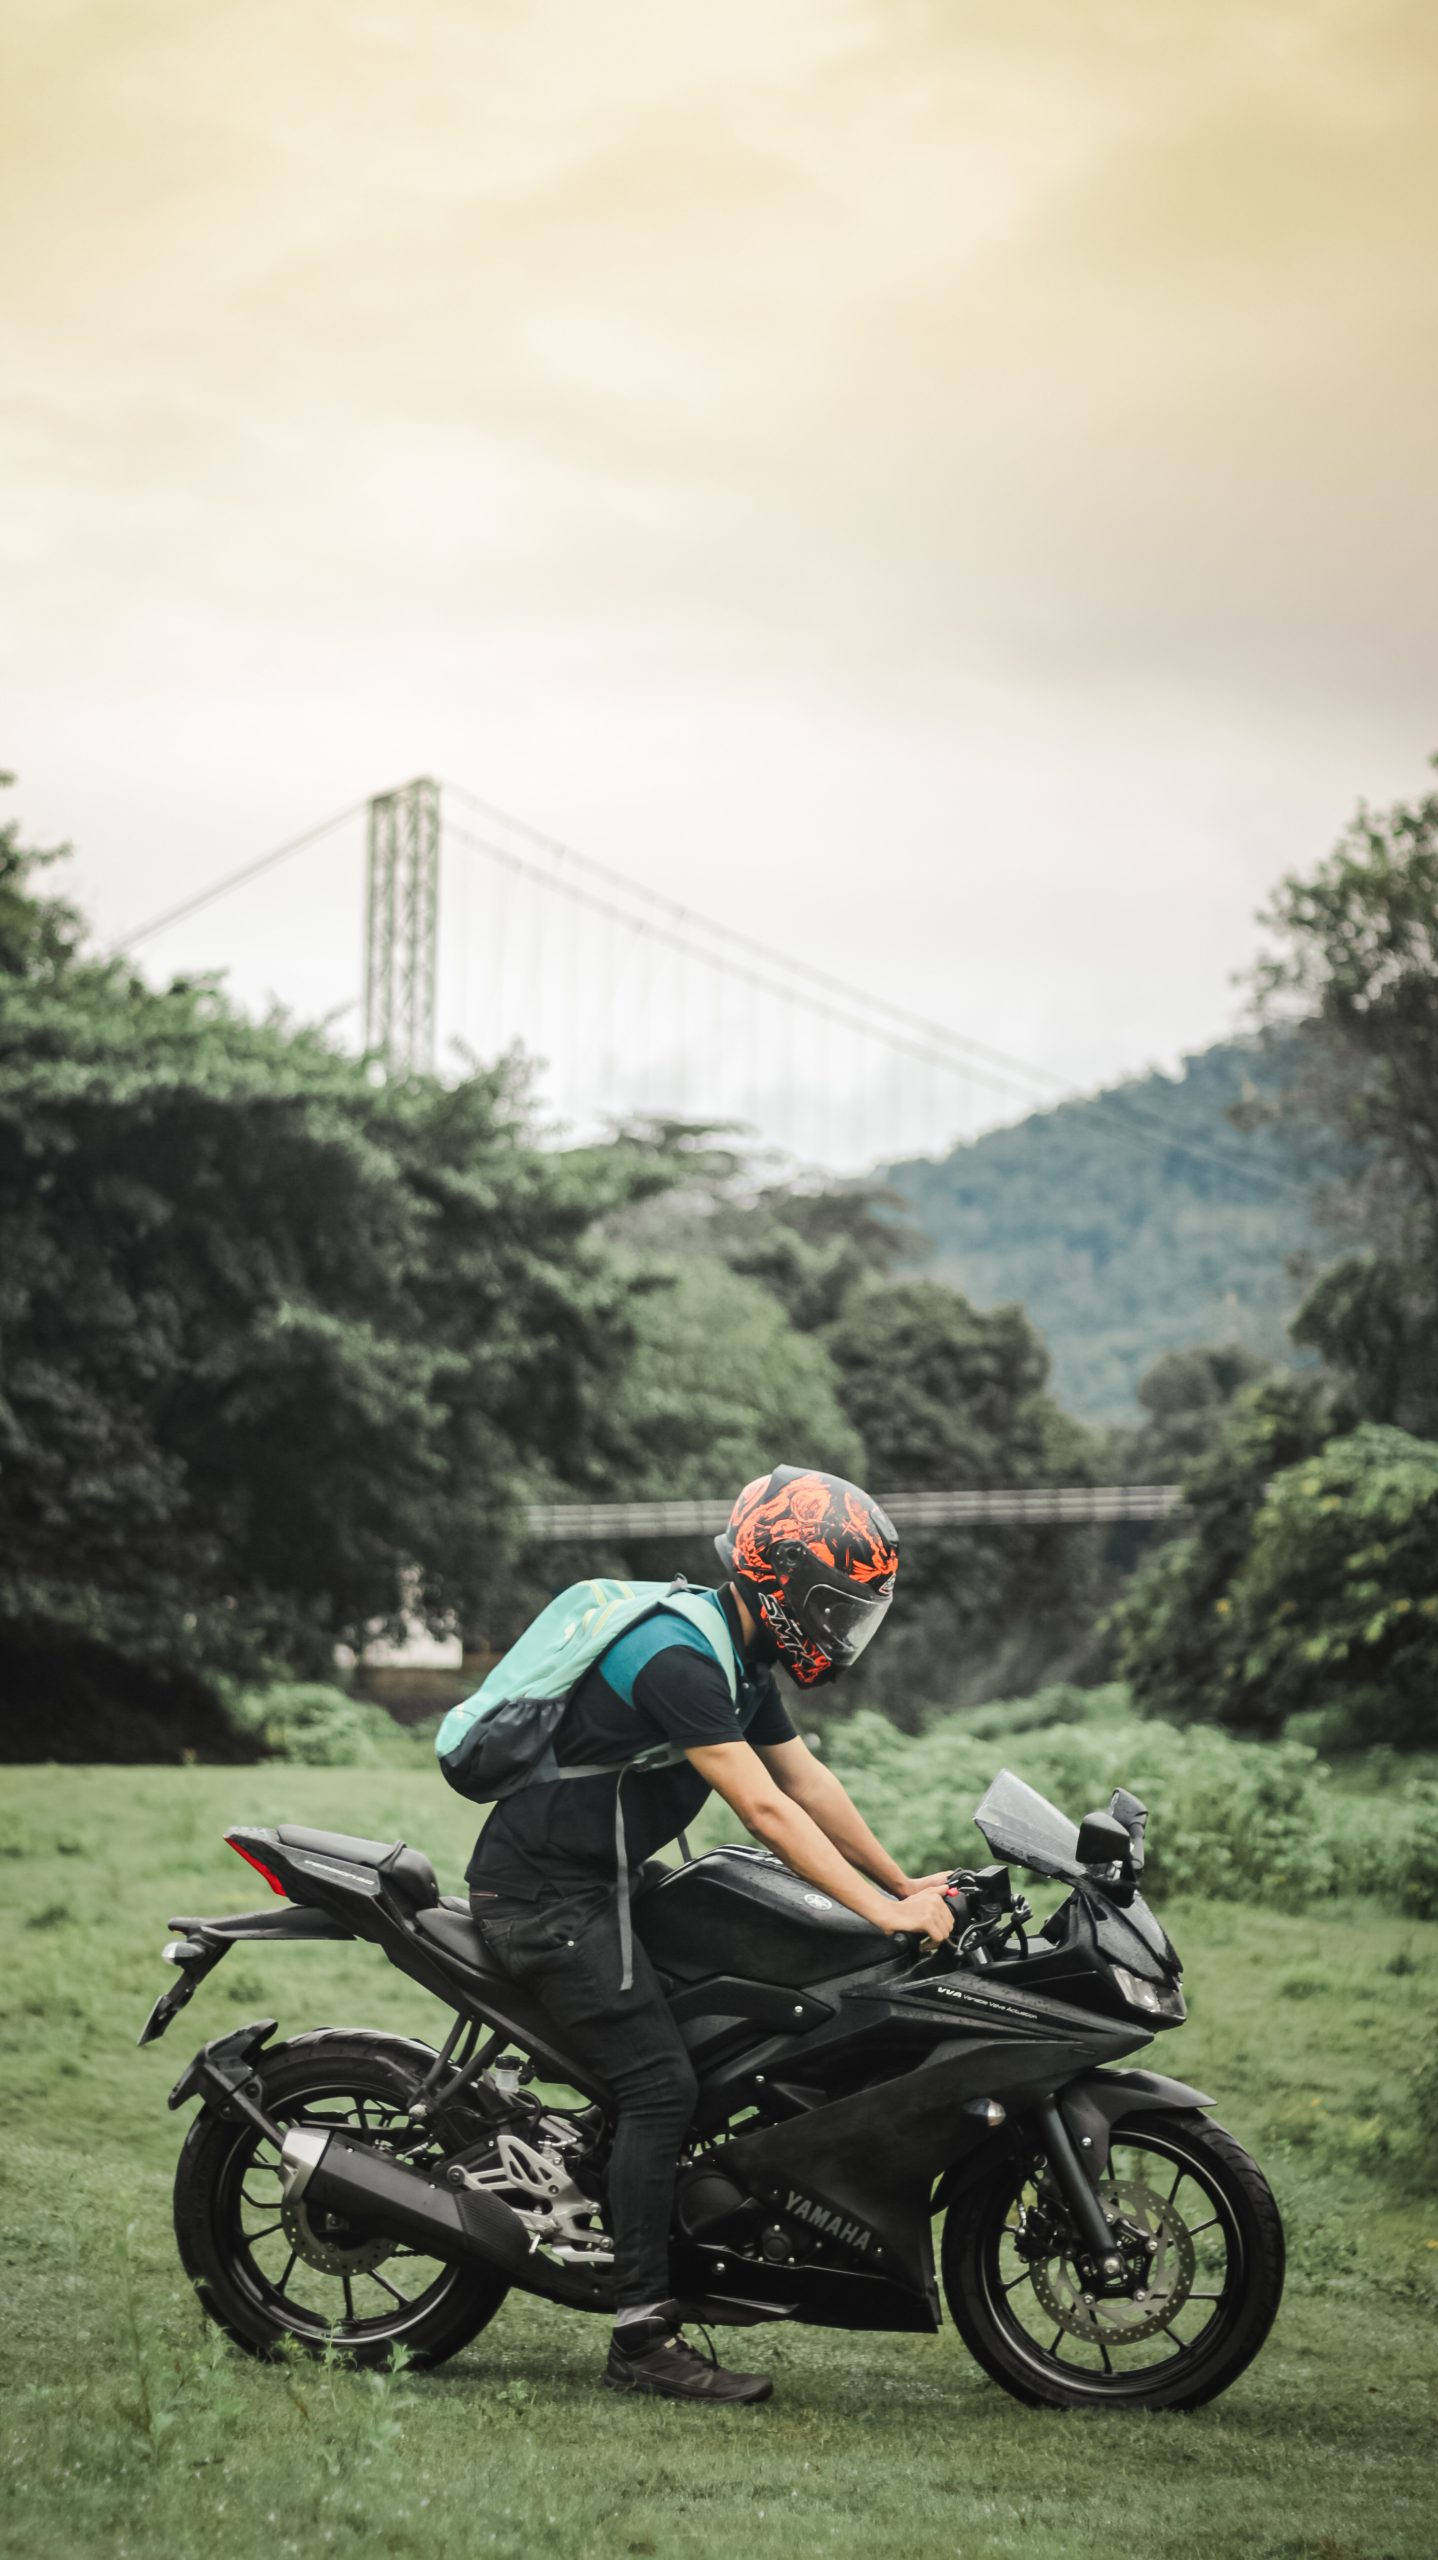 Biker with an amazing background